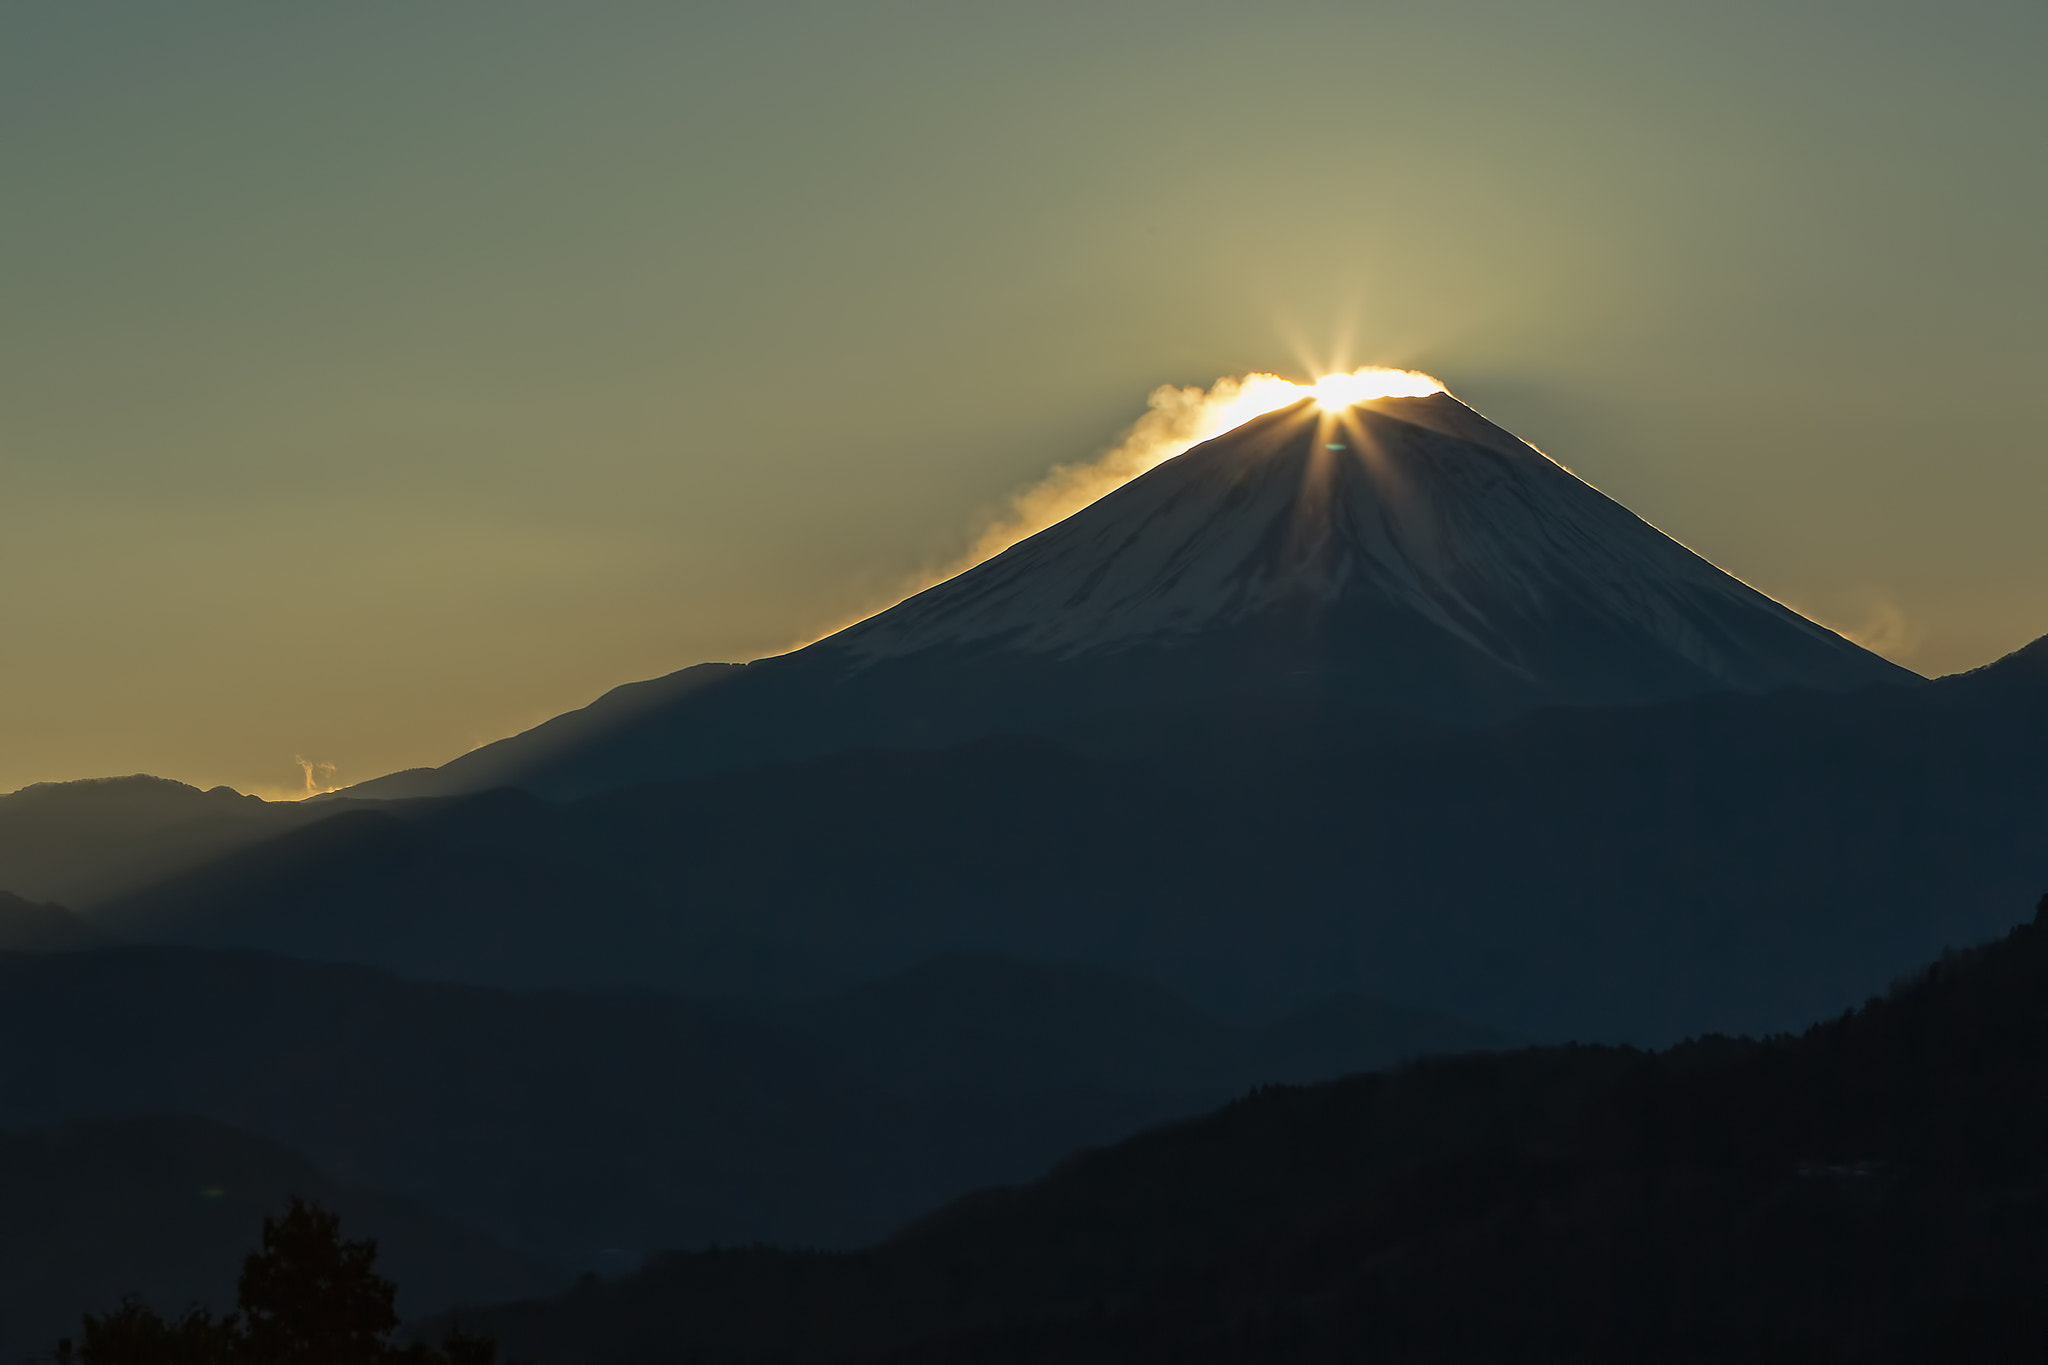 Photograph A moment of sunrise - Diamond Fuji by MIYAMOTO Y on 500px